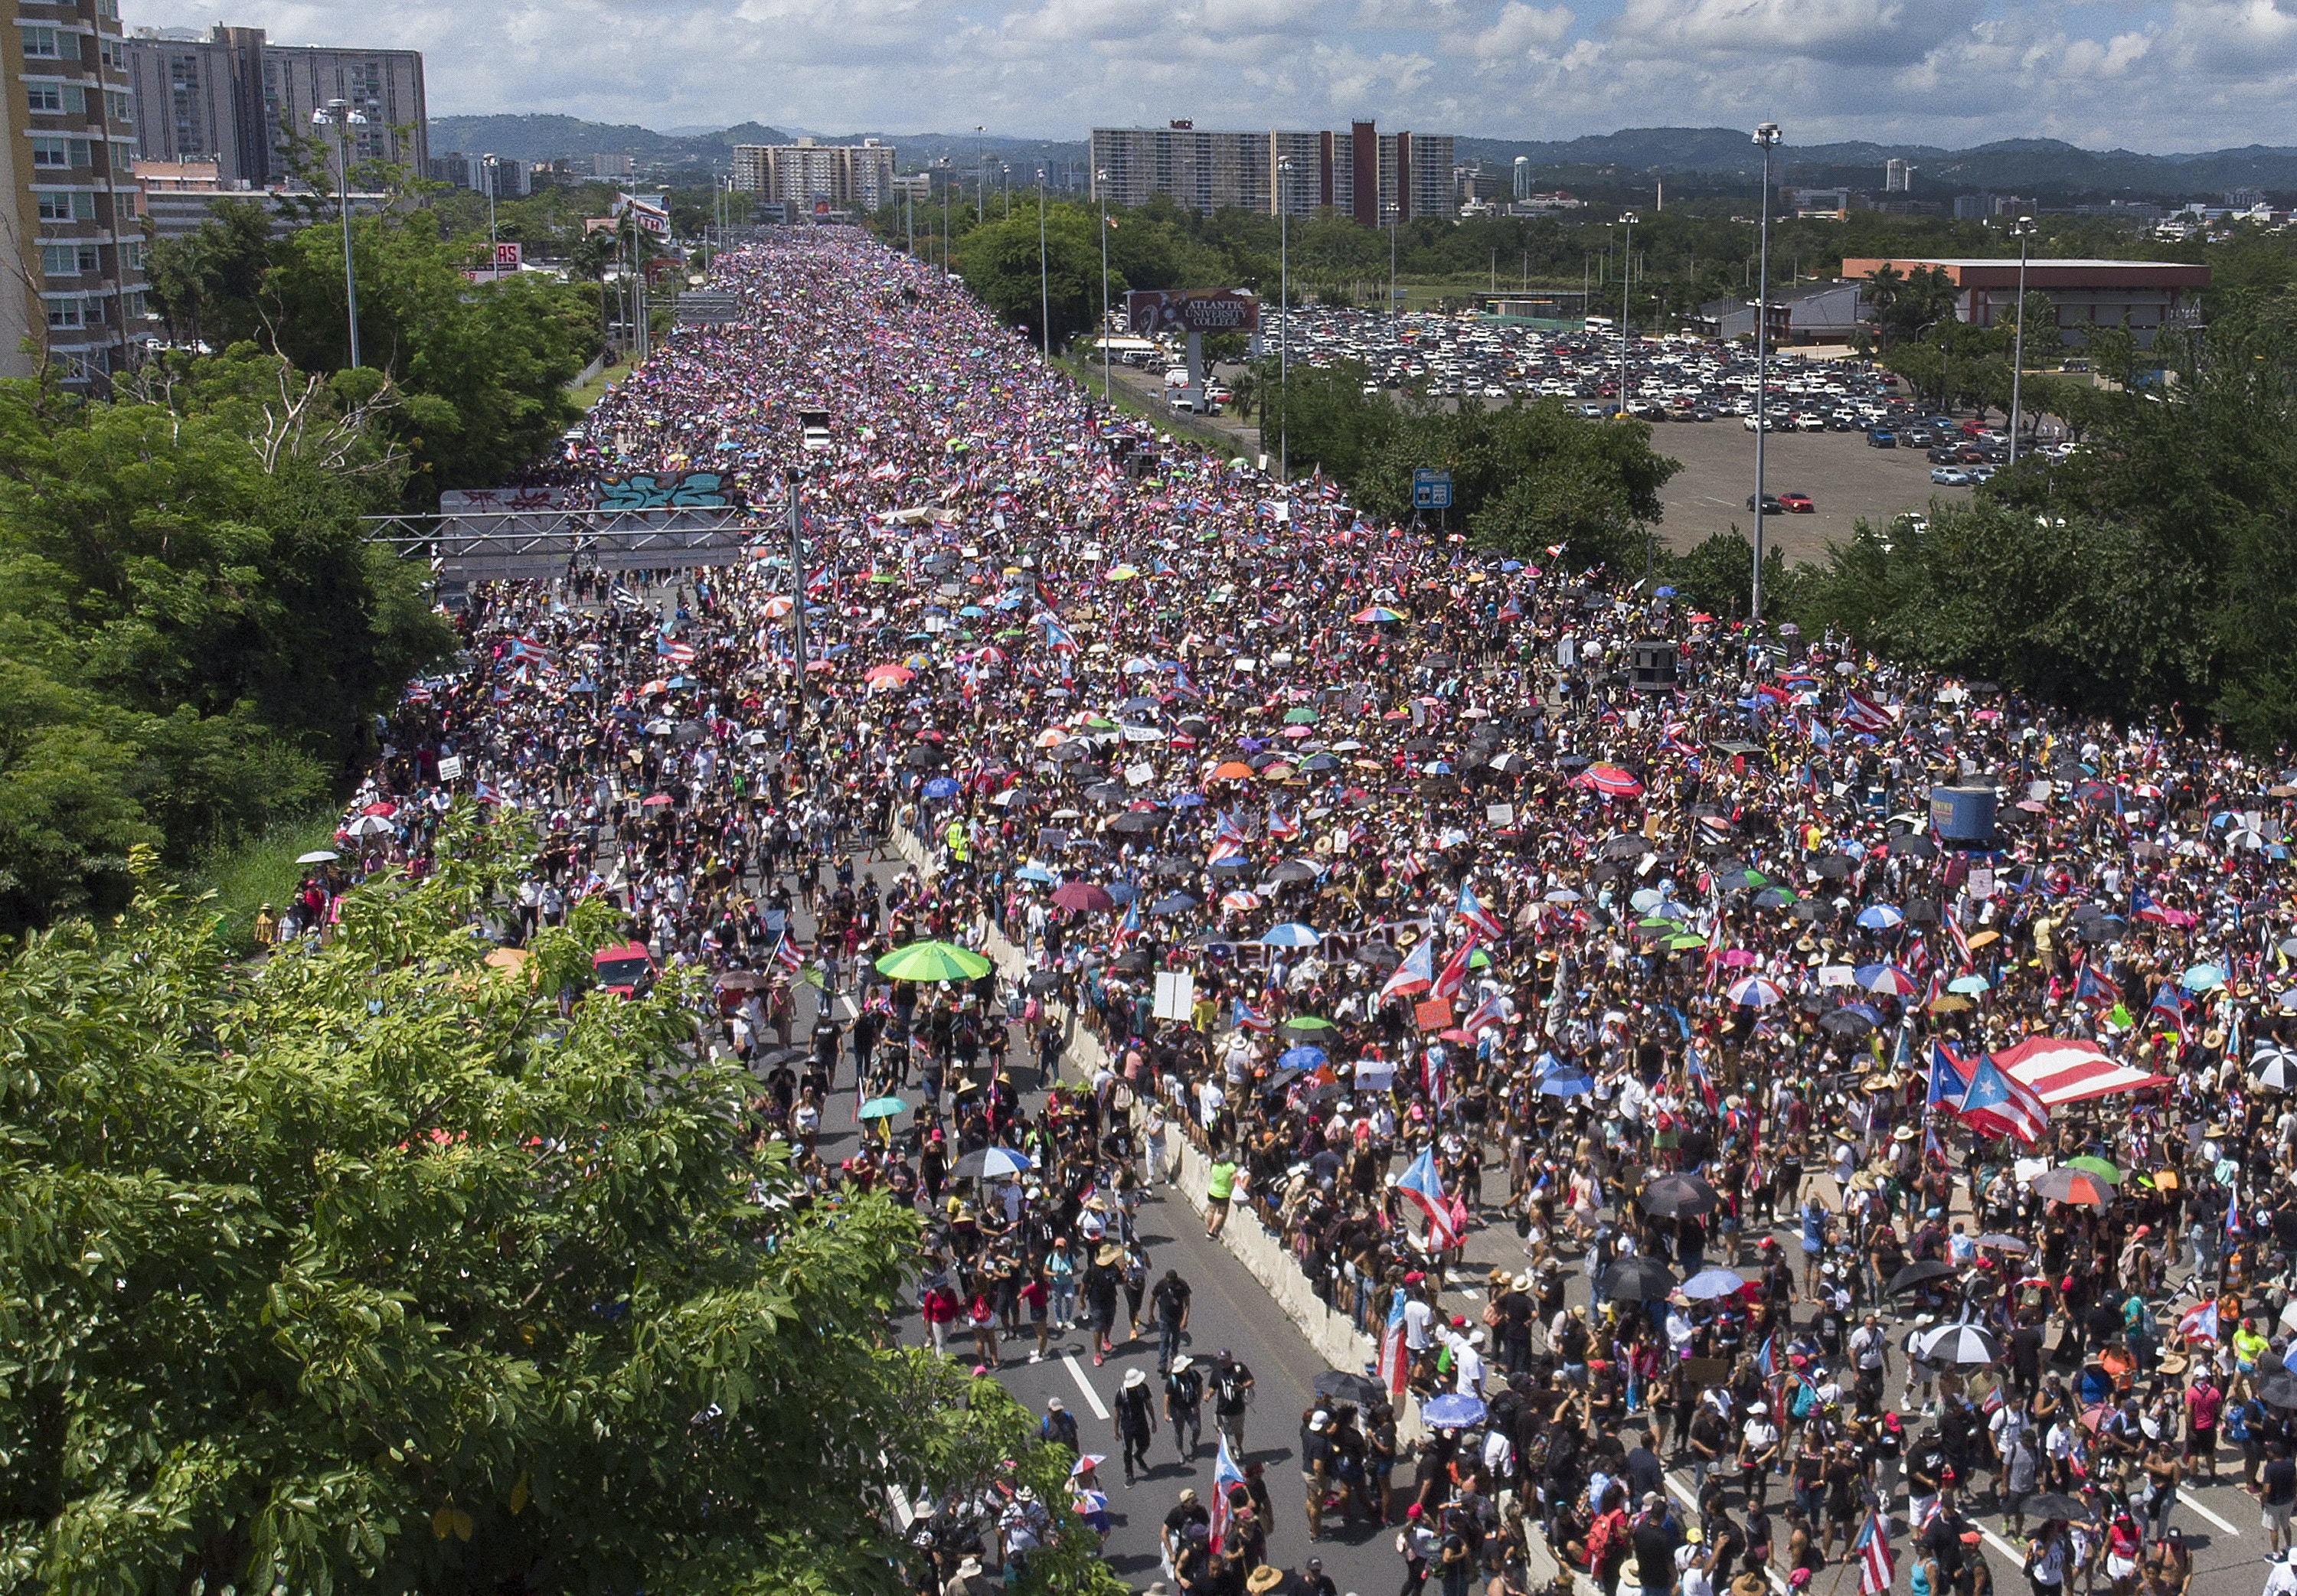 SAN JUAN, PUERTO RICO - JULY 22: An aerial view from a drone shows thousands of people as they fill the Expreso Las Américas highway calling for the ouster of Gov. Ricardo A. Rosselló on July 22, 2019 in San Juan, Puerto Rico. The protesters are calling on Gov. Rosselló to step down after a group chat was exposed that included misogynistic and homophobic comments. (Photo by Joe Raedle/Getty Images)